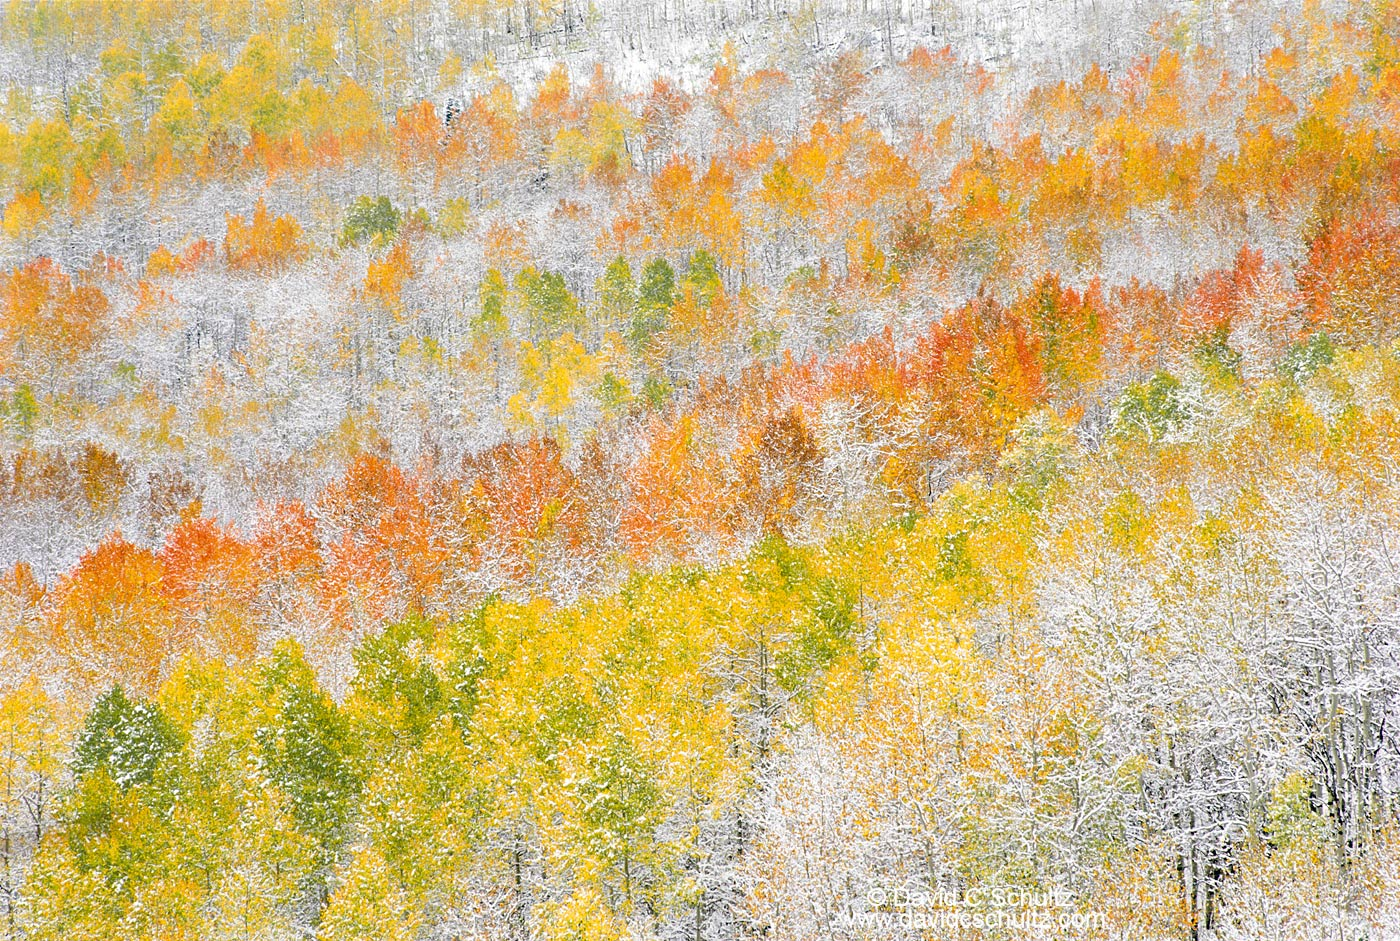 Snow covered aspen trees, Wasatch Mountains, Utah - Image #3-830